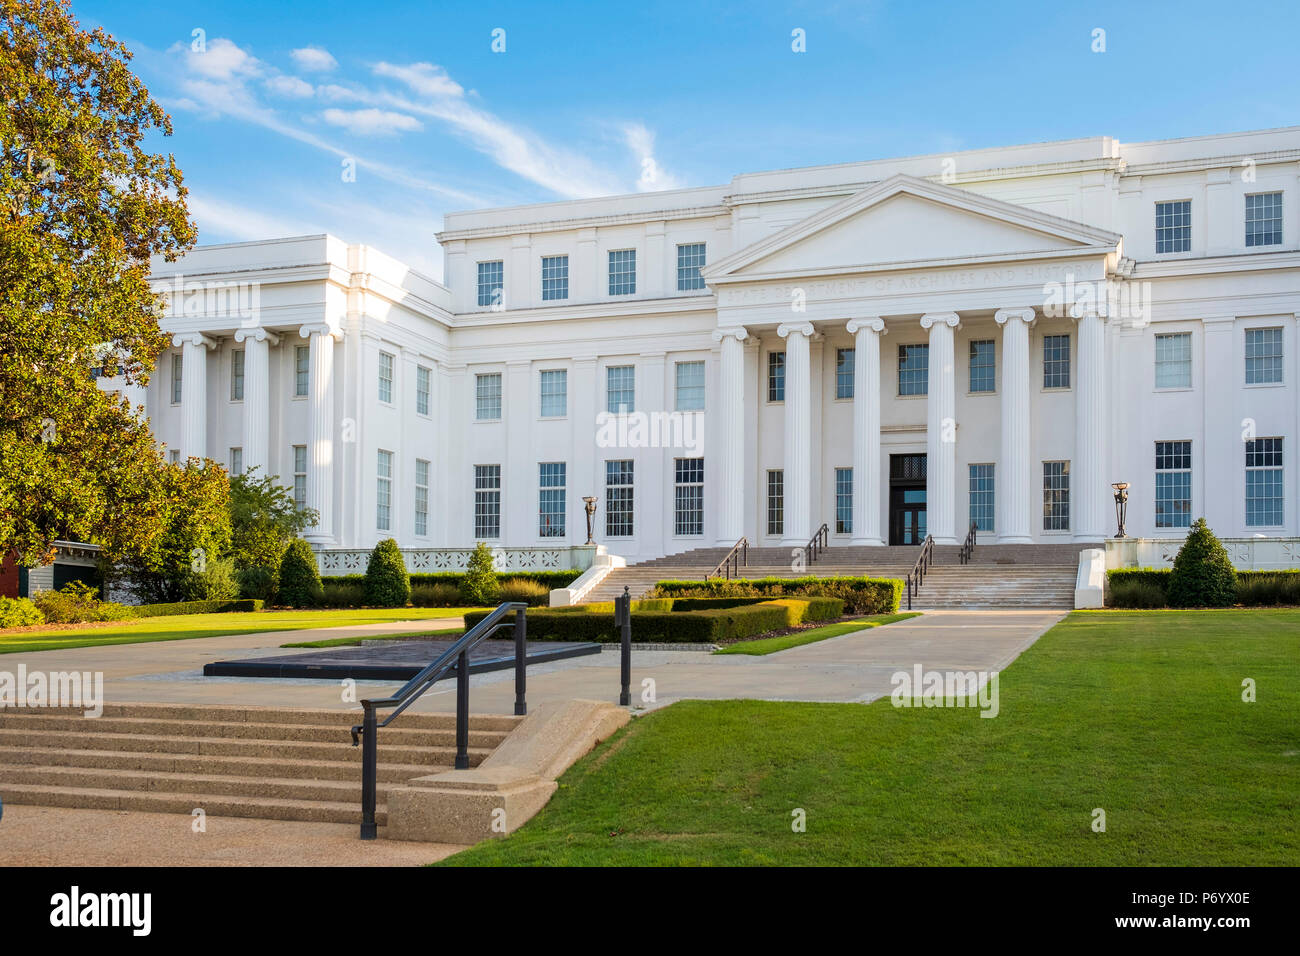 United States, Alabama, Montgomery. Alabama Department of Archives and History. - Stock Image